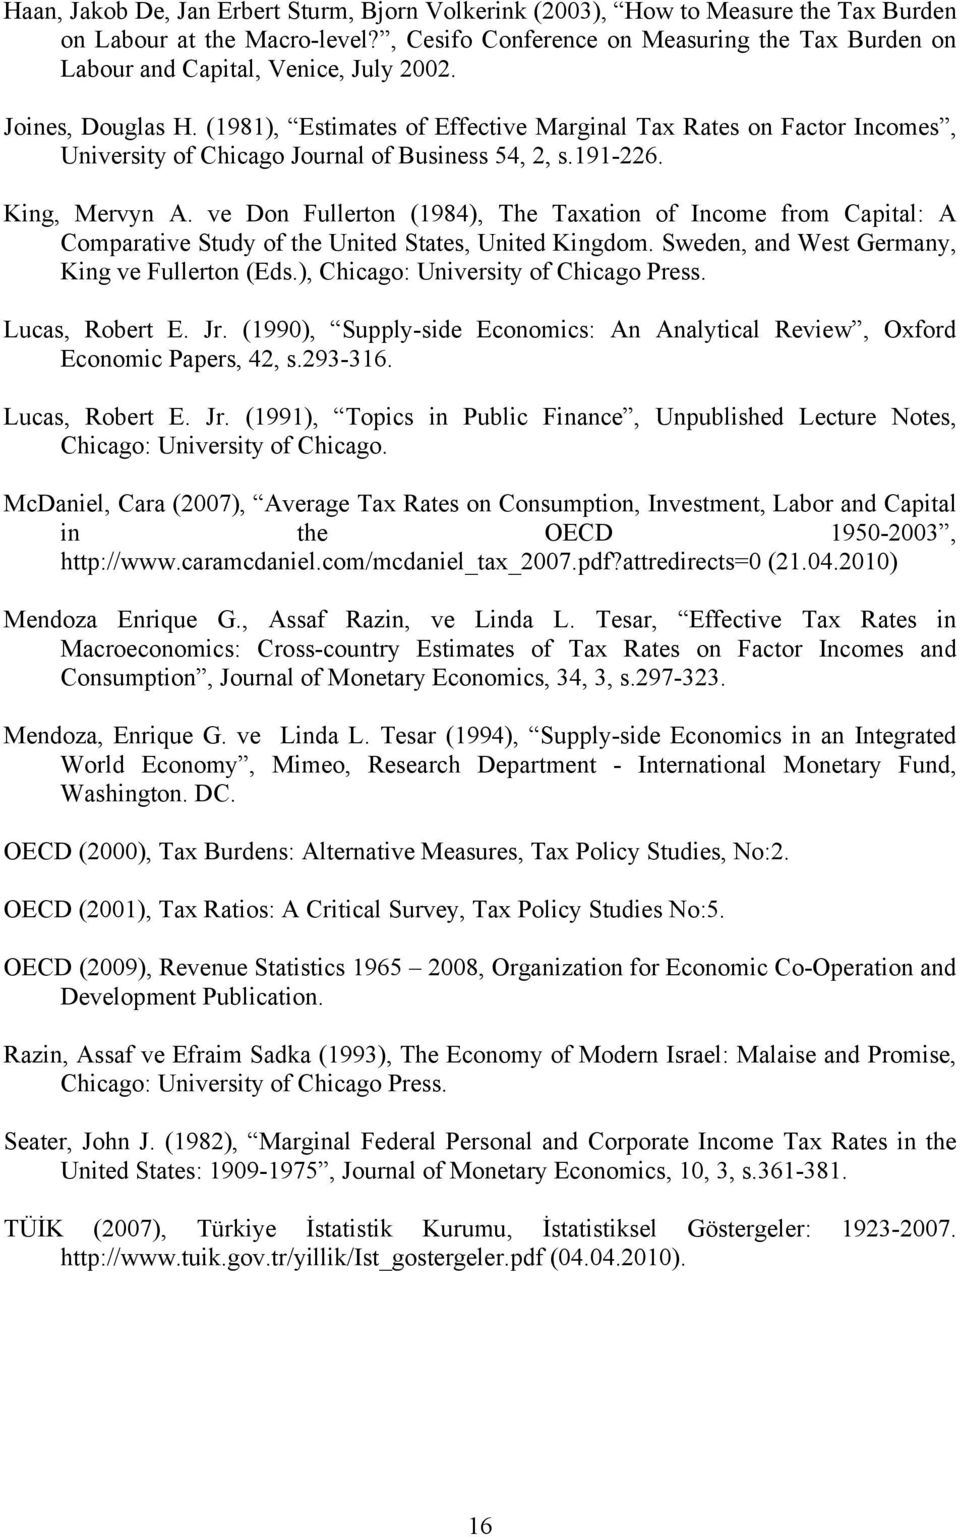 (1981), Estimates of Effective Marginal Tax Rates on Factor Incomes, University of Chicago Journal of Business 54, 2, s.191-226. King, Mervyn A.